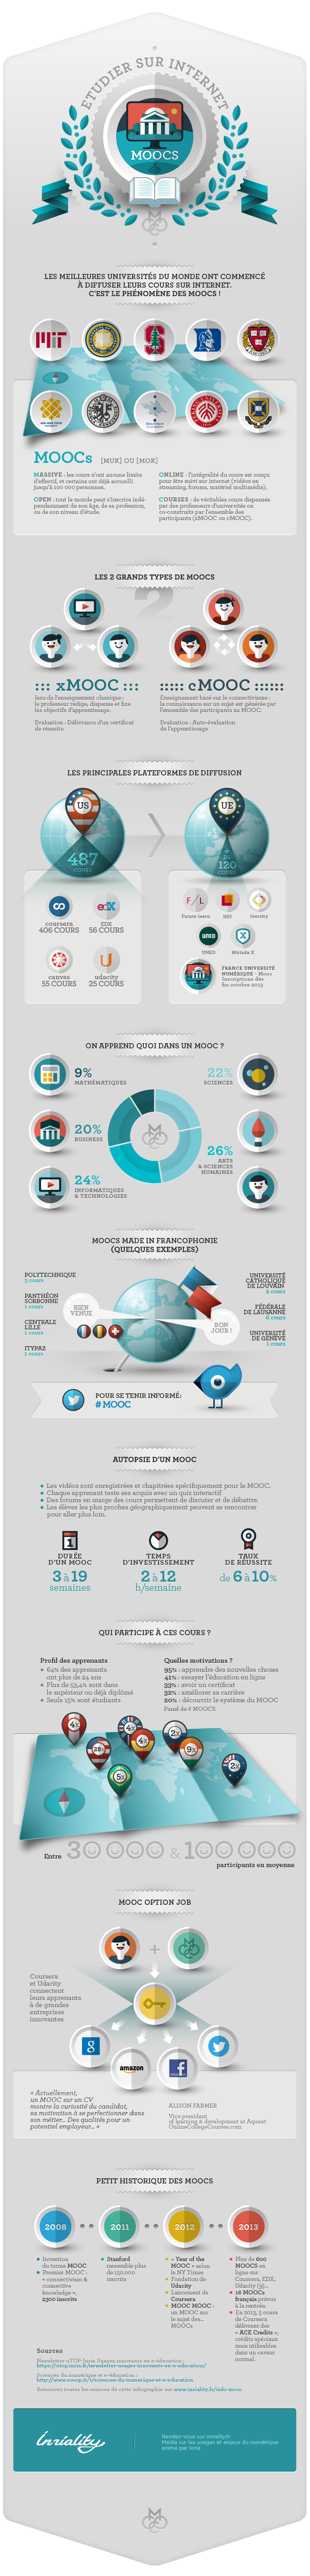 infographie_inriality_mooc